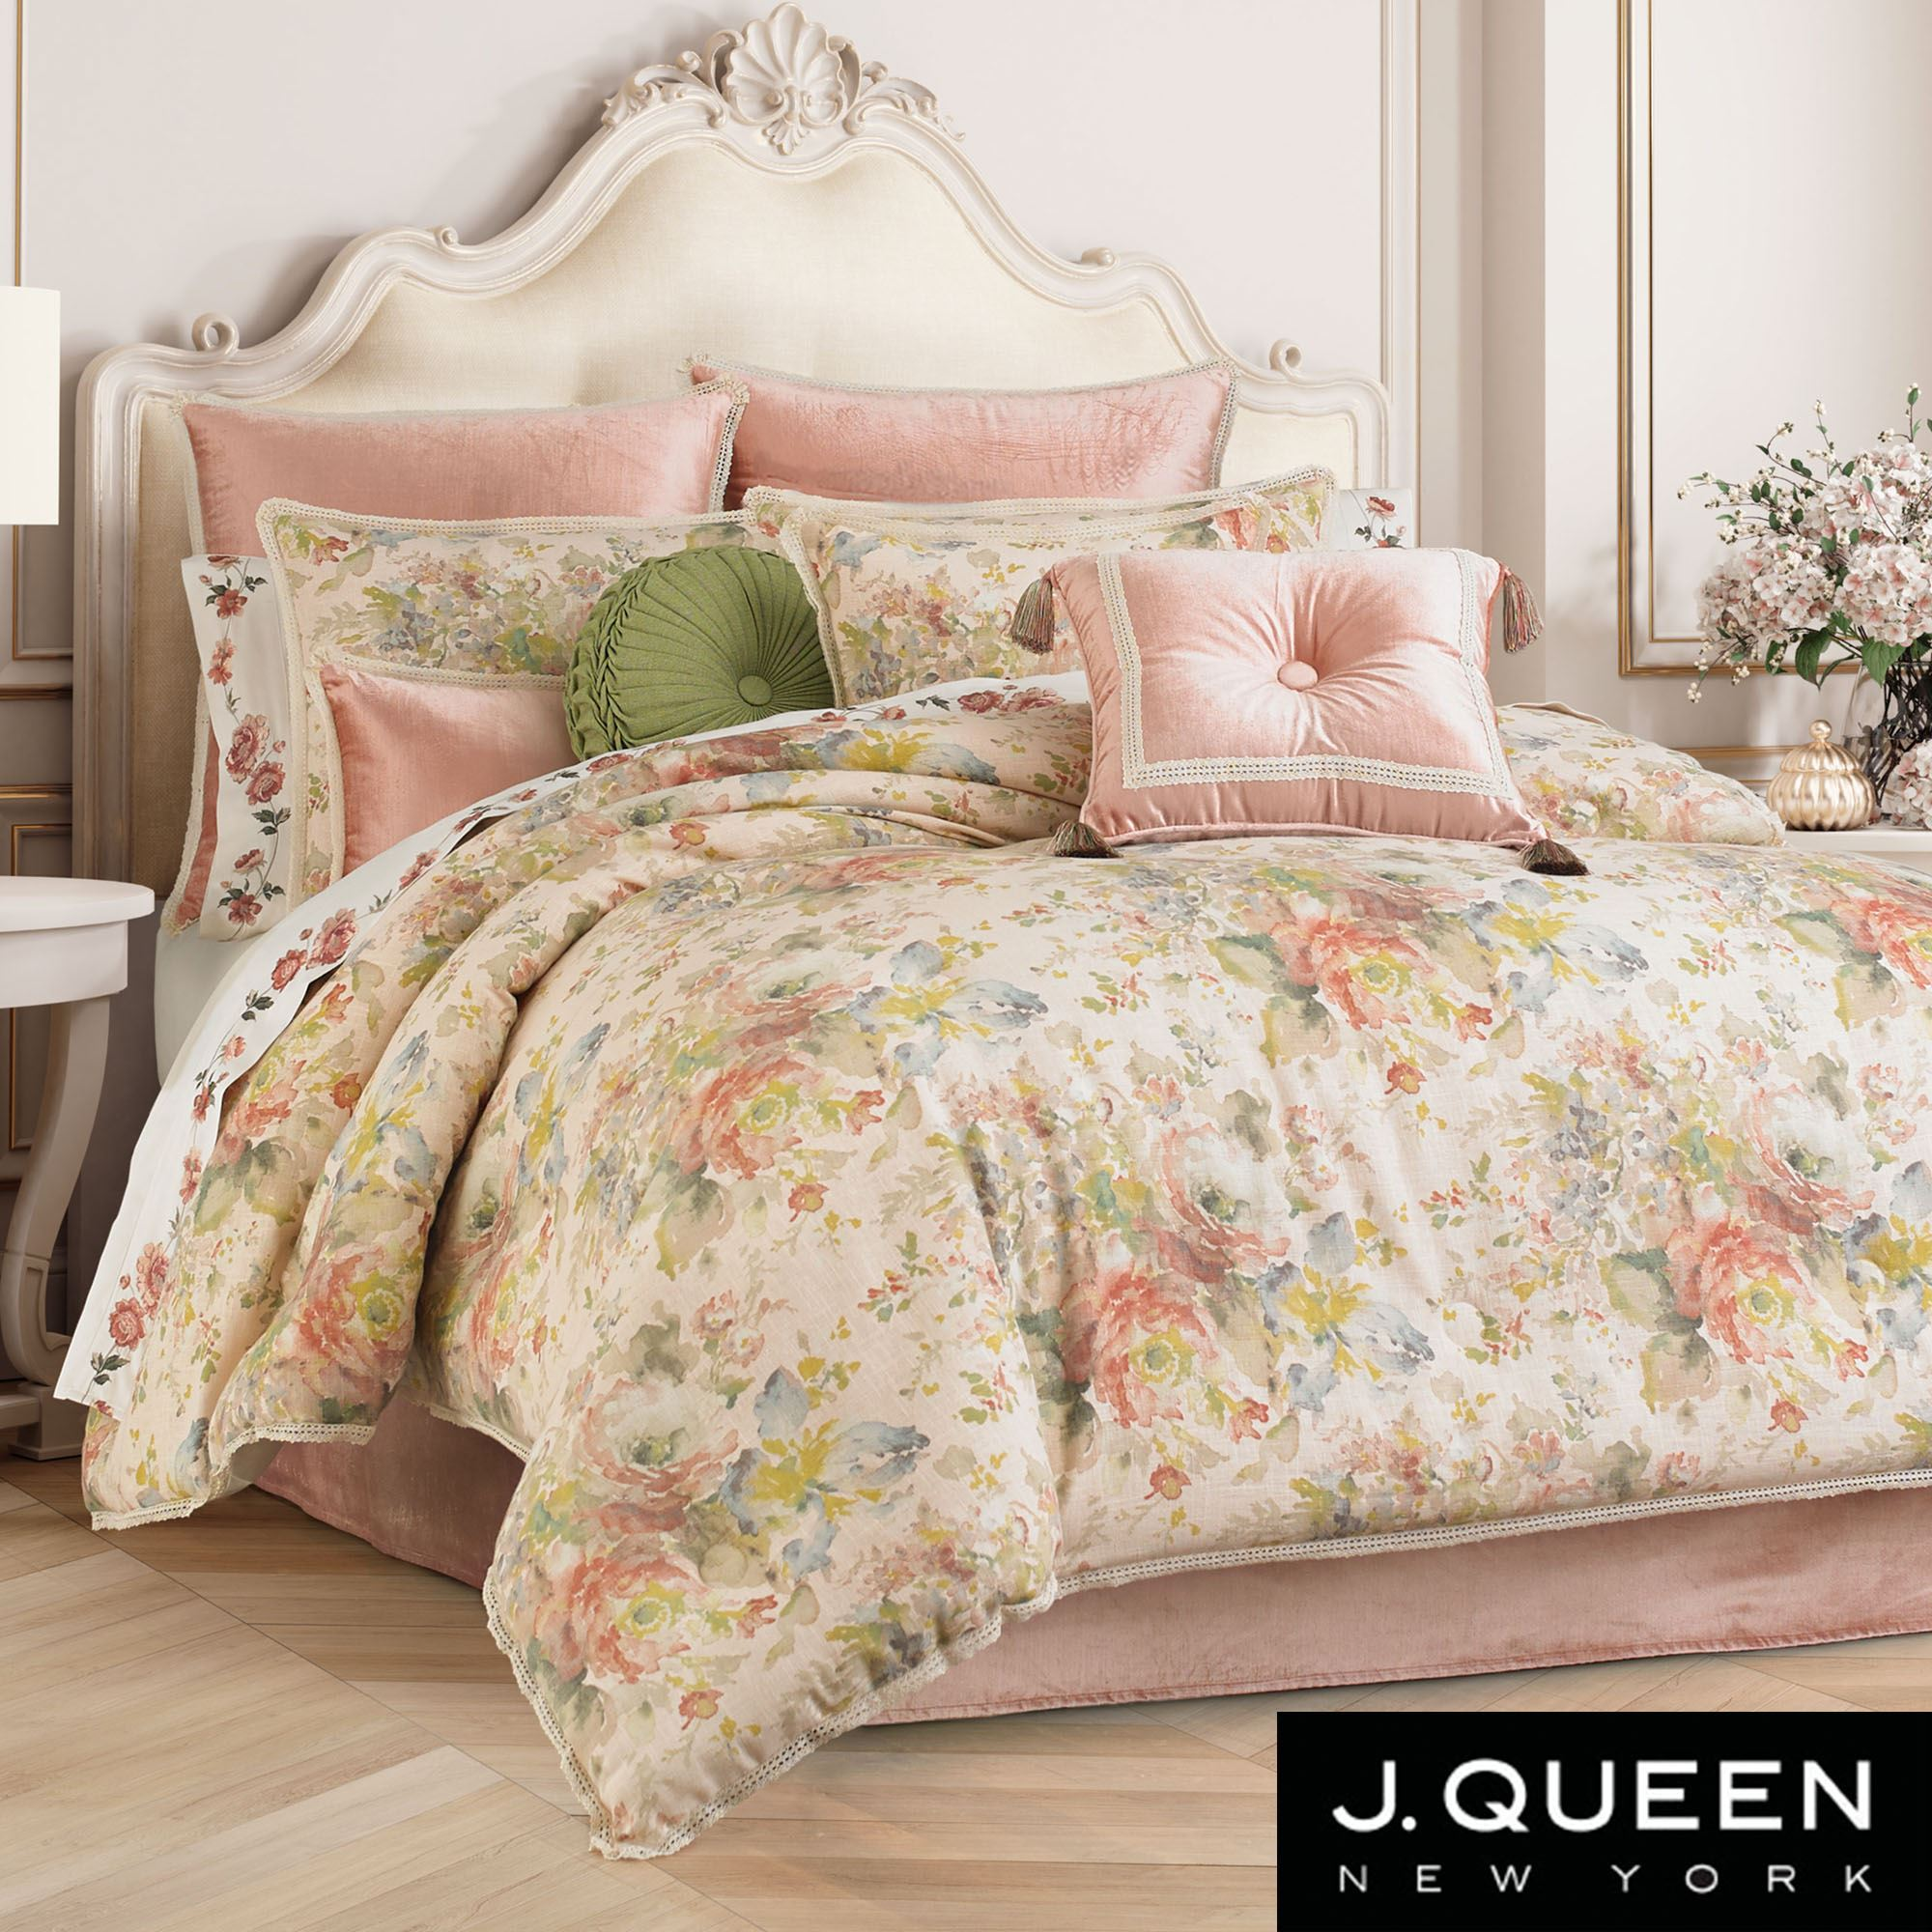 Floral Park Comforter Bedding By J Queen New York